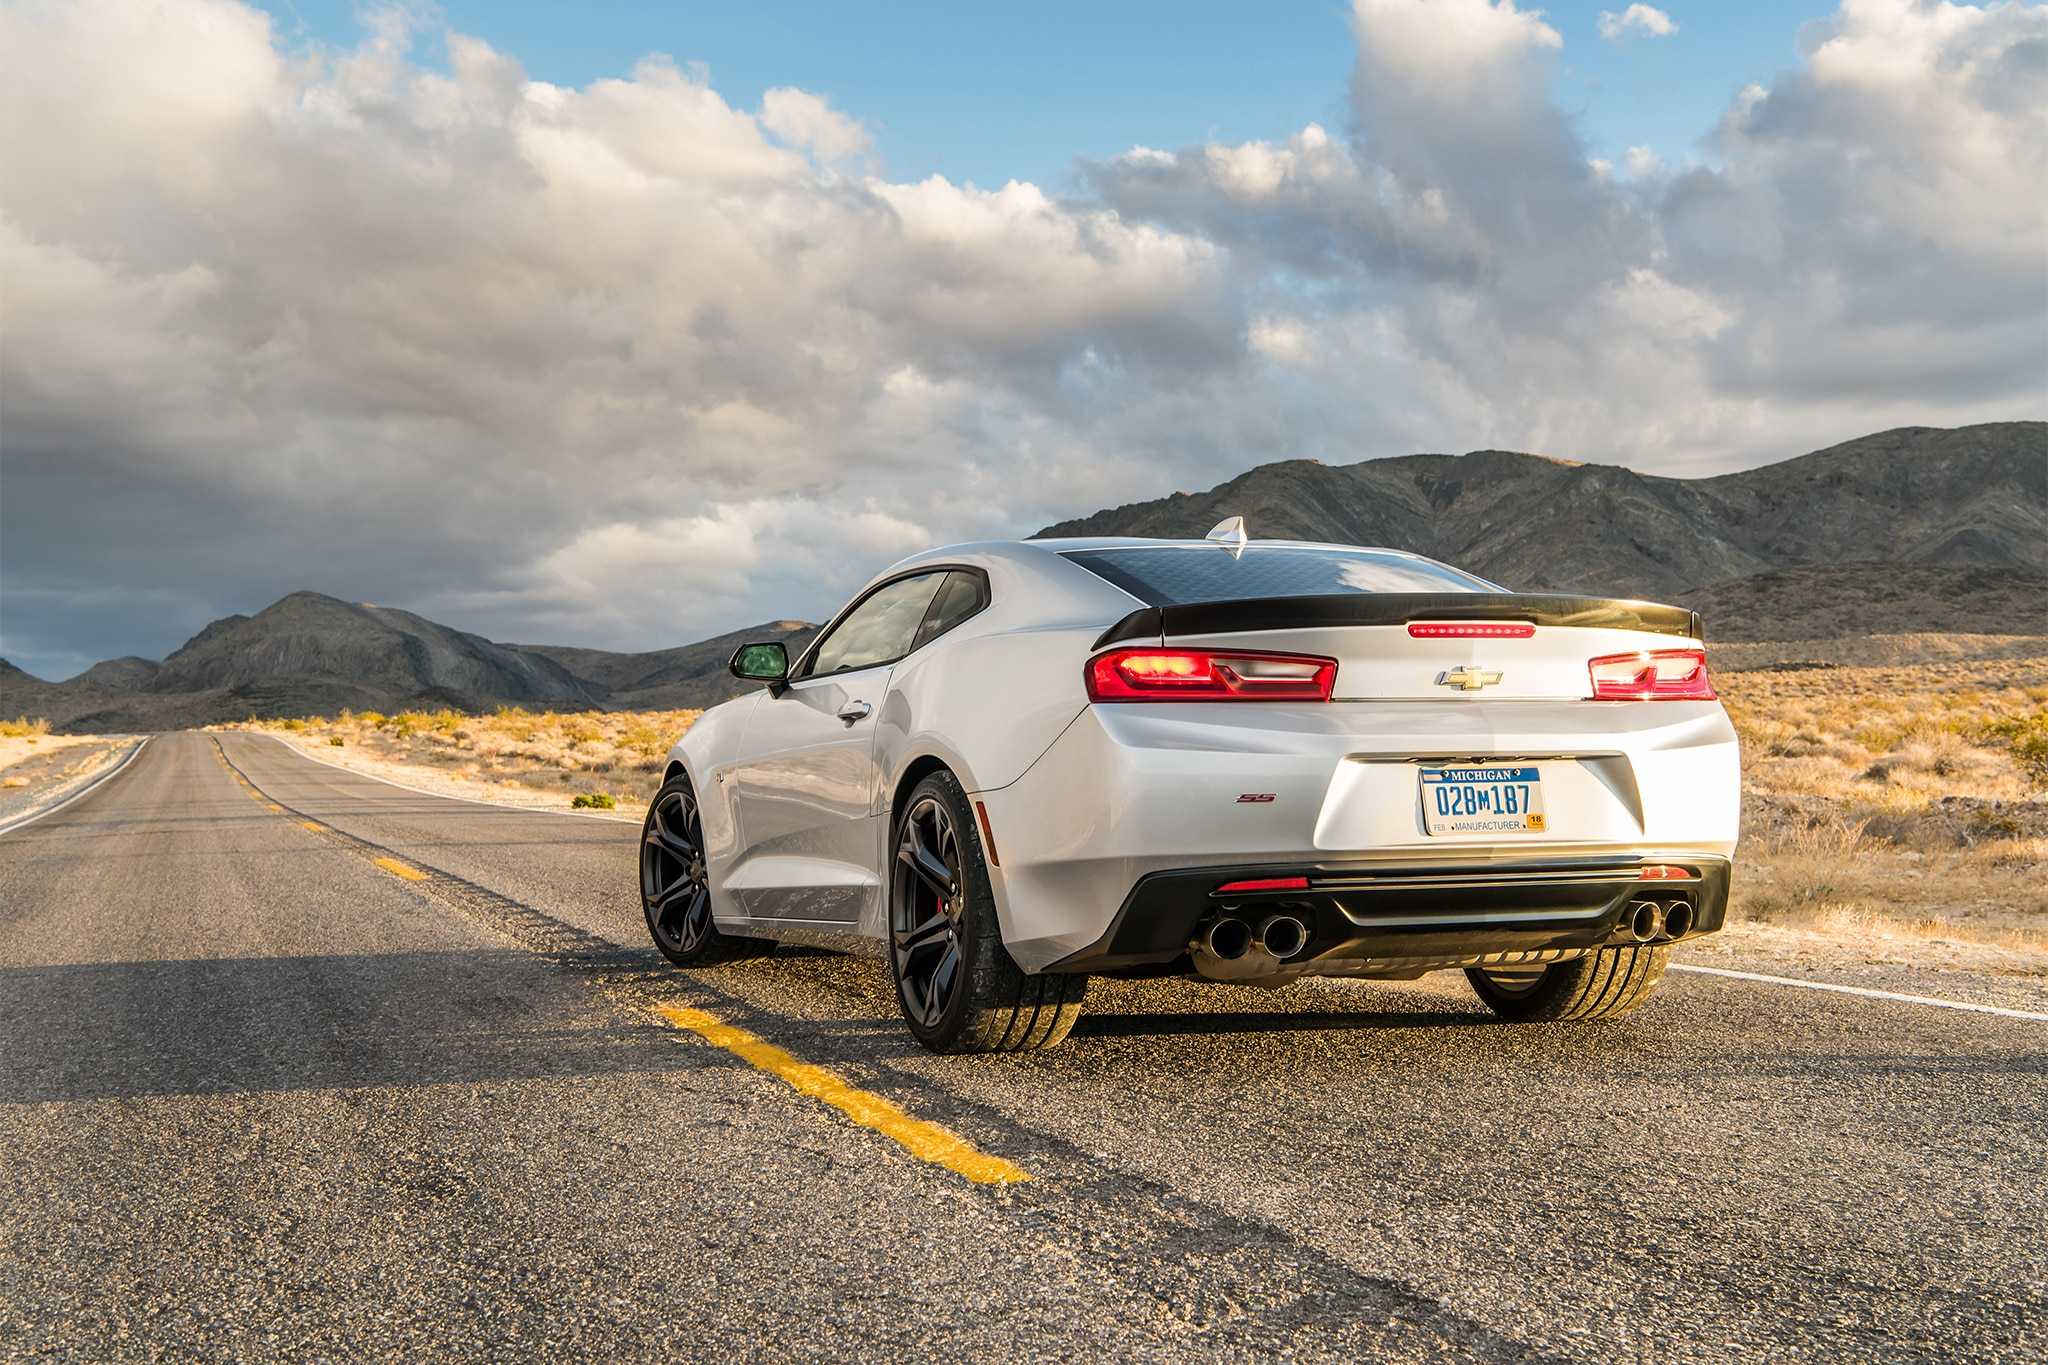 2017 Chevrolet Camaro SS 1LE One Week Review | Automobile Magazine